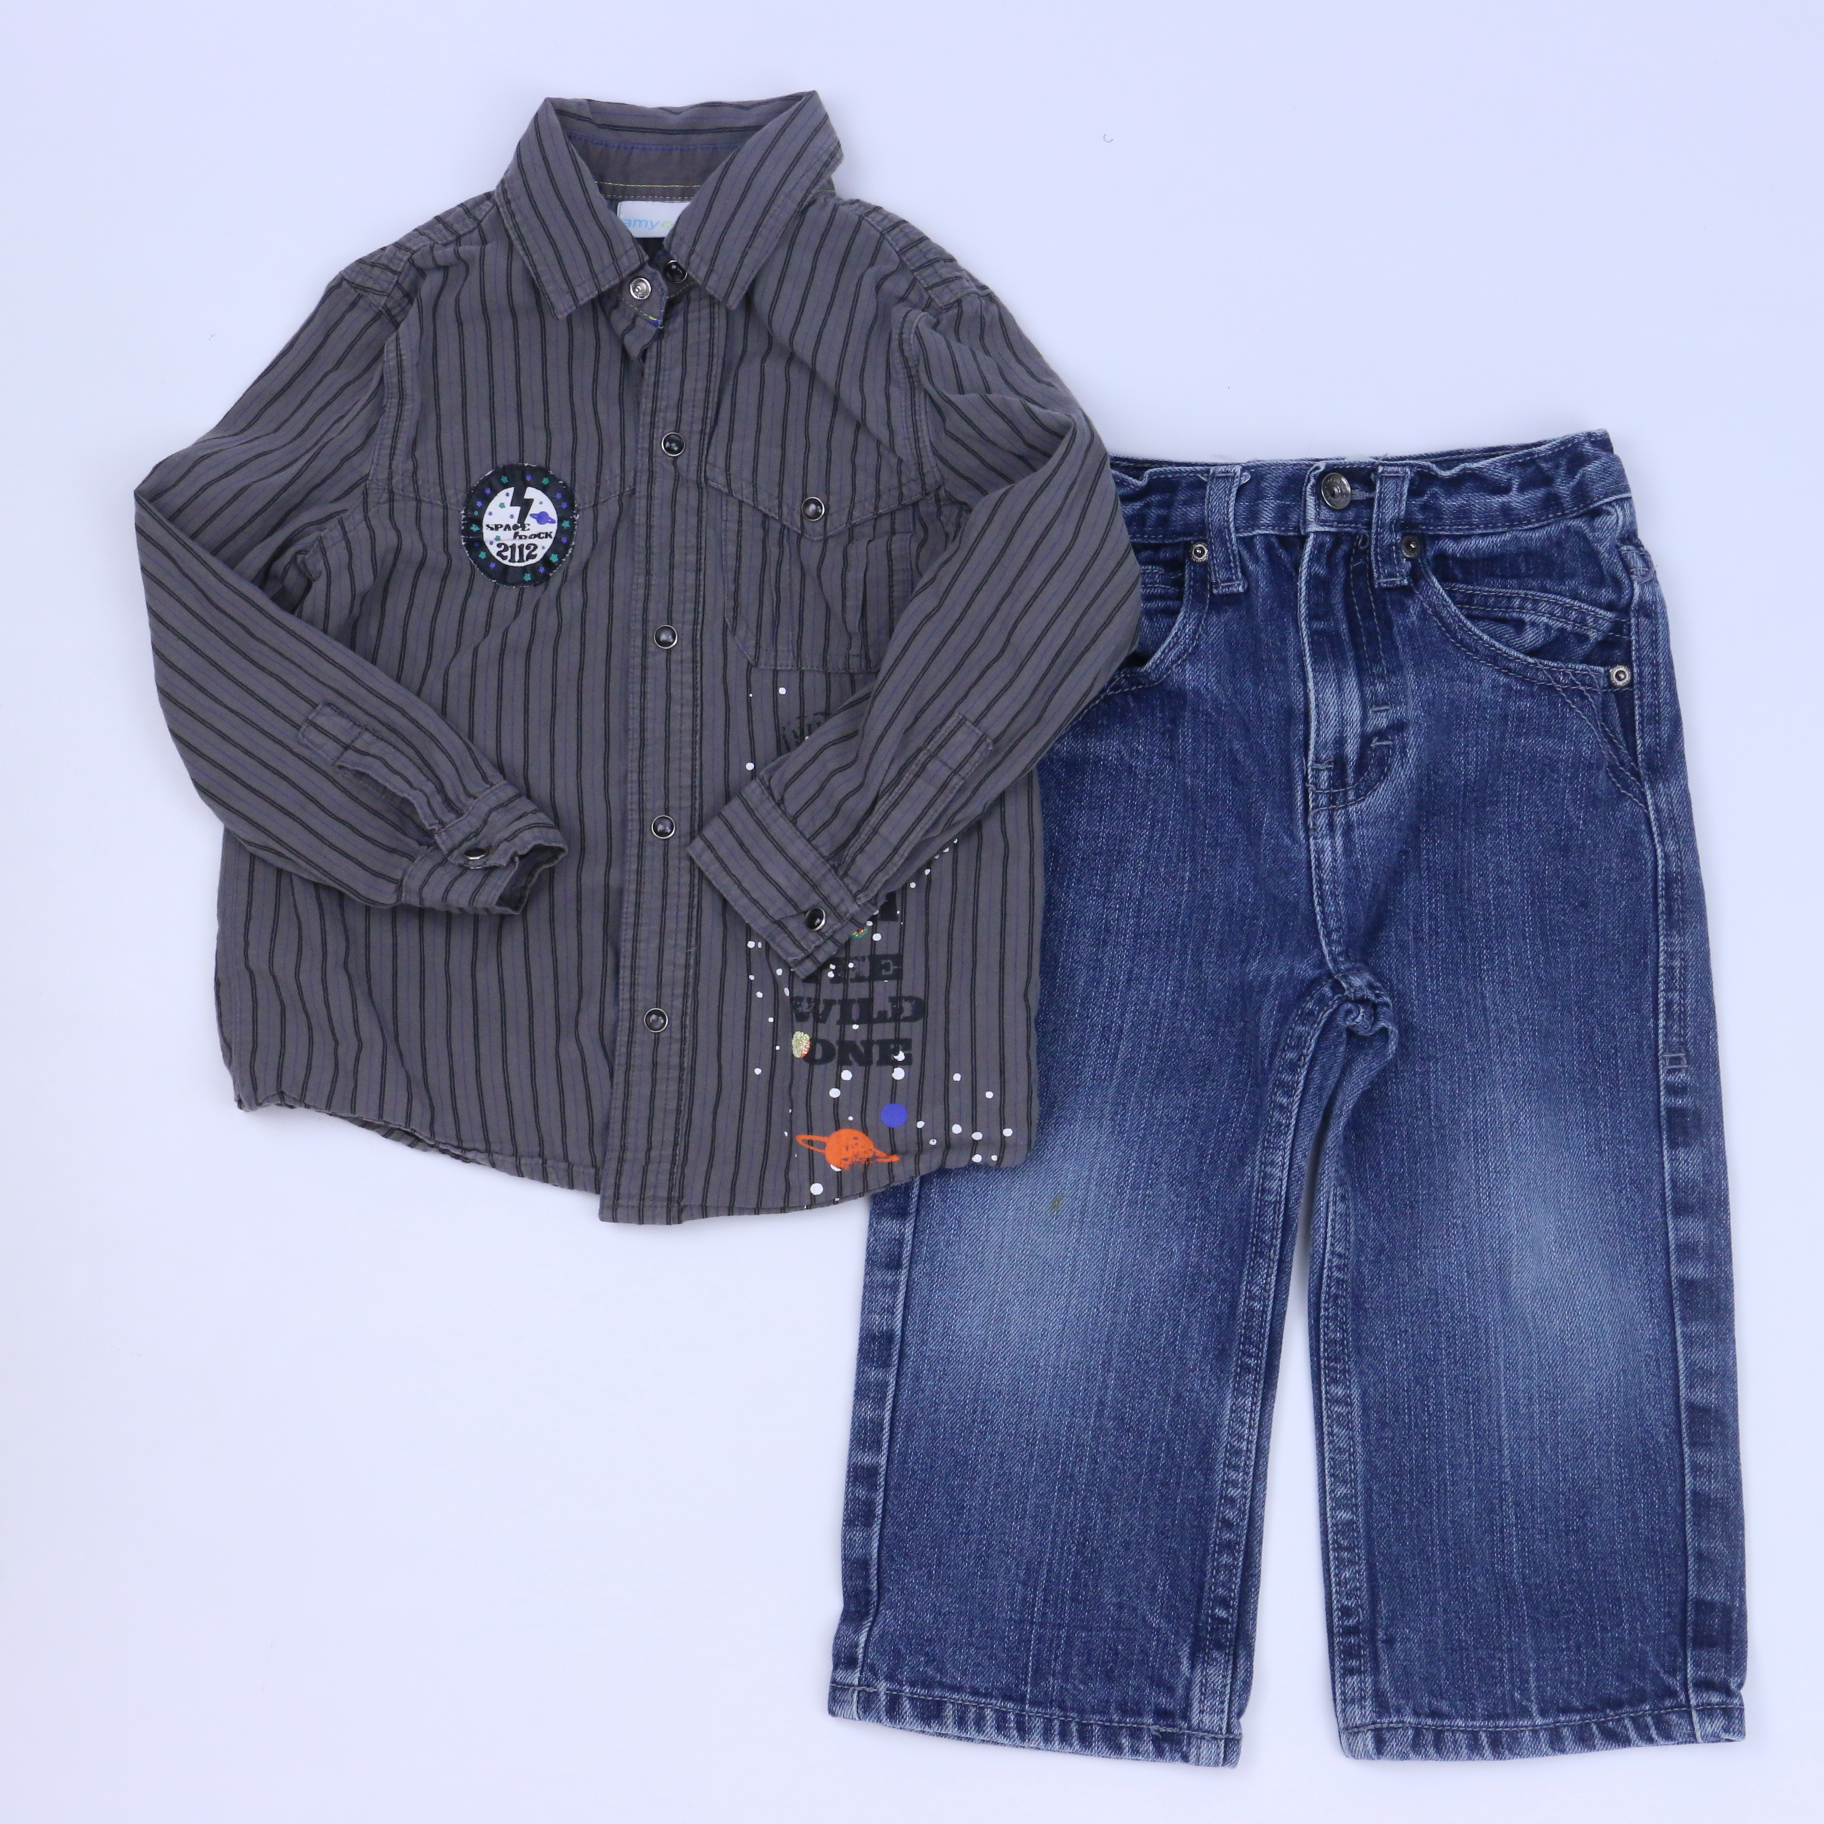 d4f882a12 2-pieces Apparel Sets size  4T - The Swoondle Society